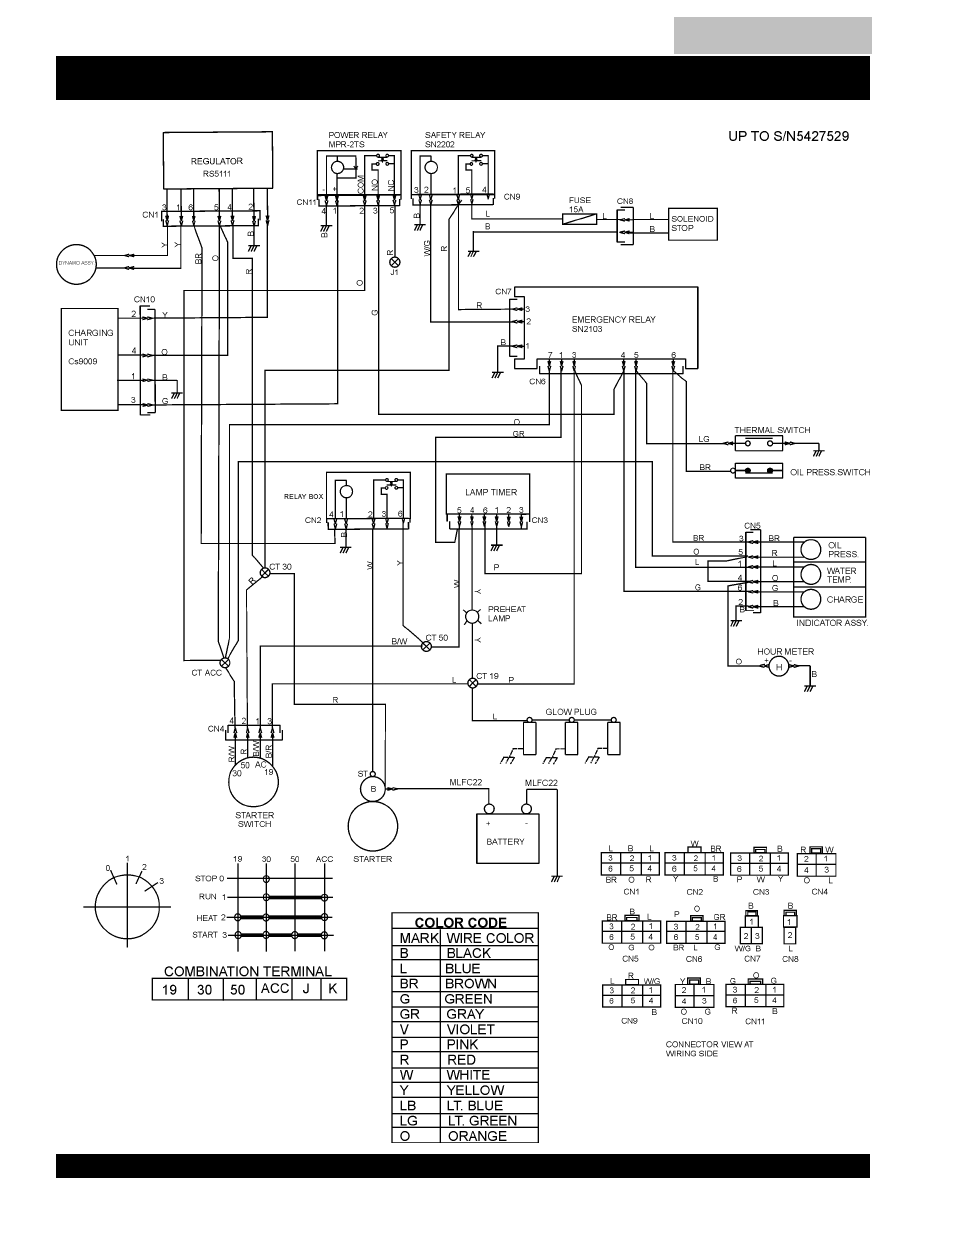 Engine wiring diagrams -41, Blw-400ssw —engine wiring diagram | Multiquip  MQ Power Duelweld Welder/Ac Generator BLW-400SSW User Manual | Page 40 /  138 | Original modeManualsDir.com